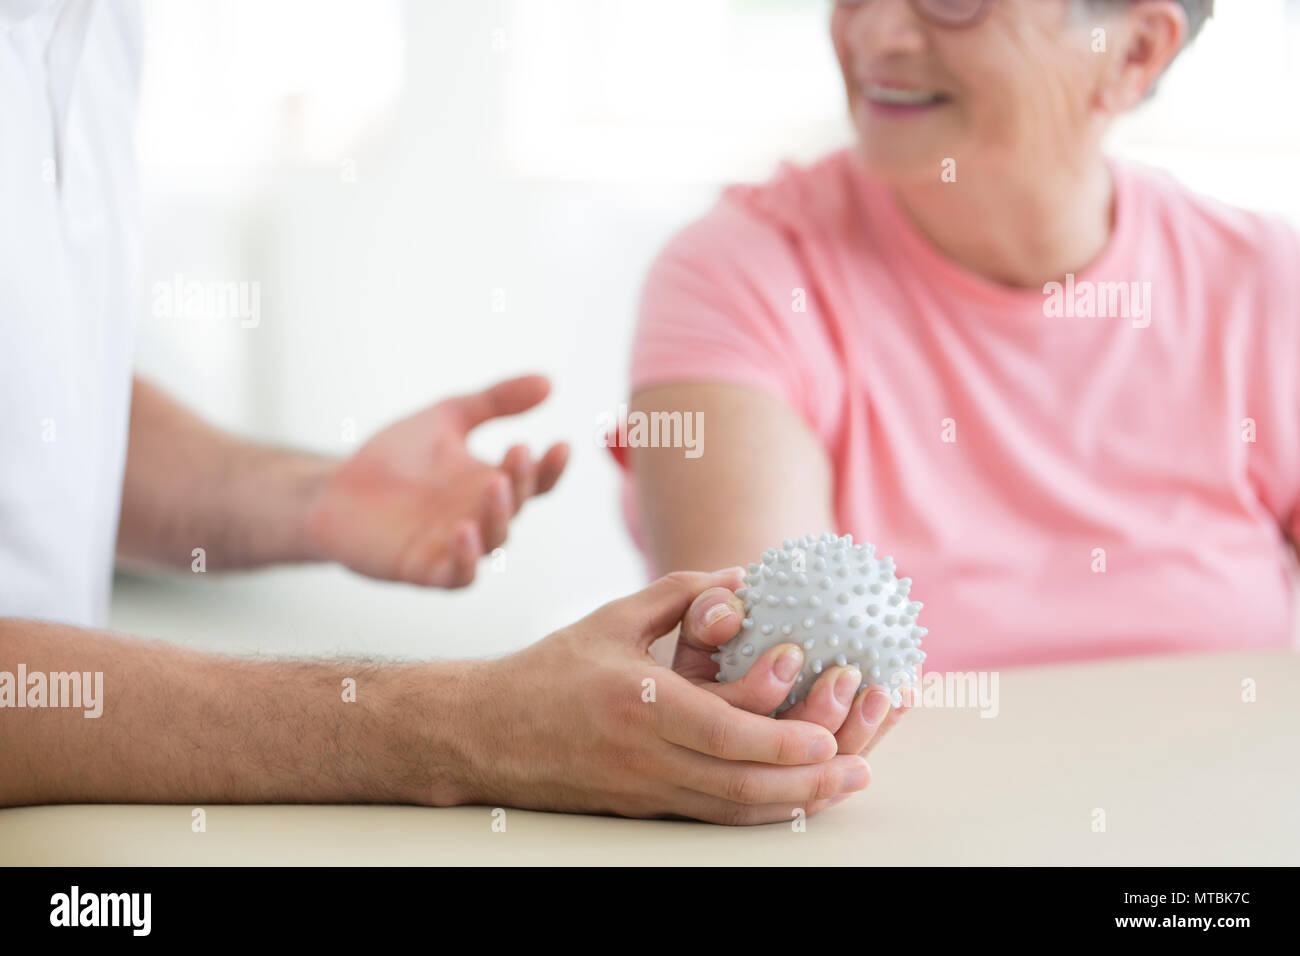 Nursing home patient doing active pnf exercises with a grey spiked ball used for rehabilitation purposes - Stock Image